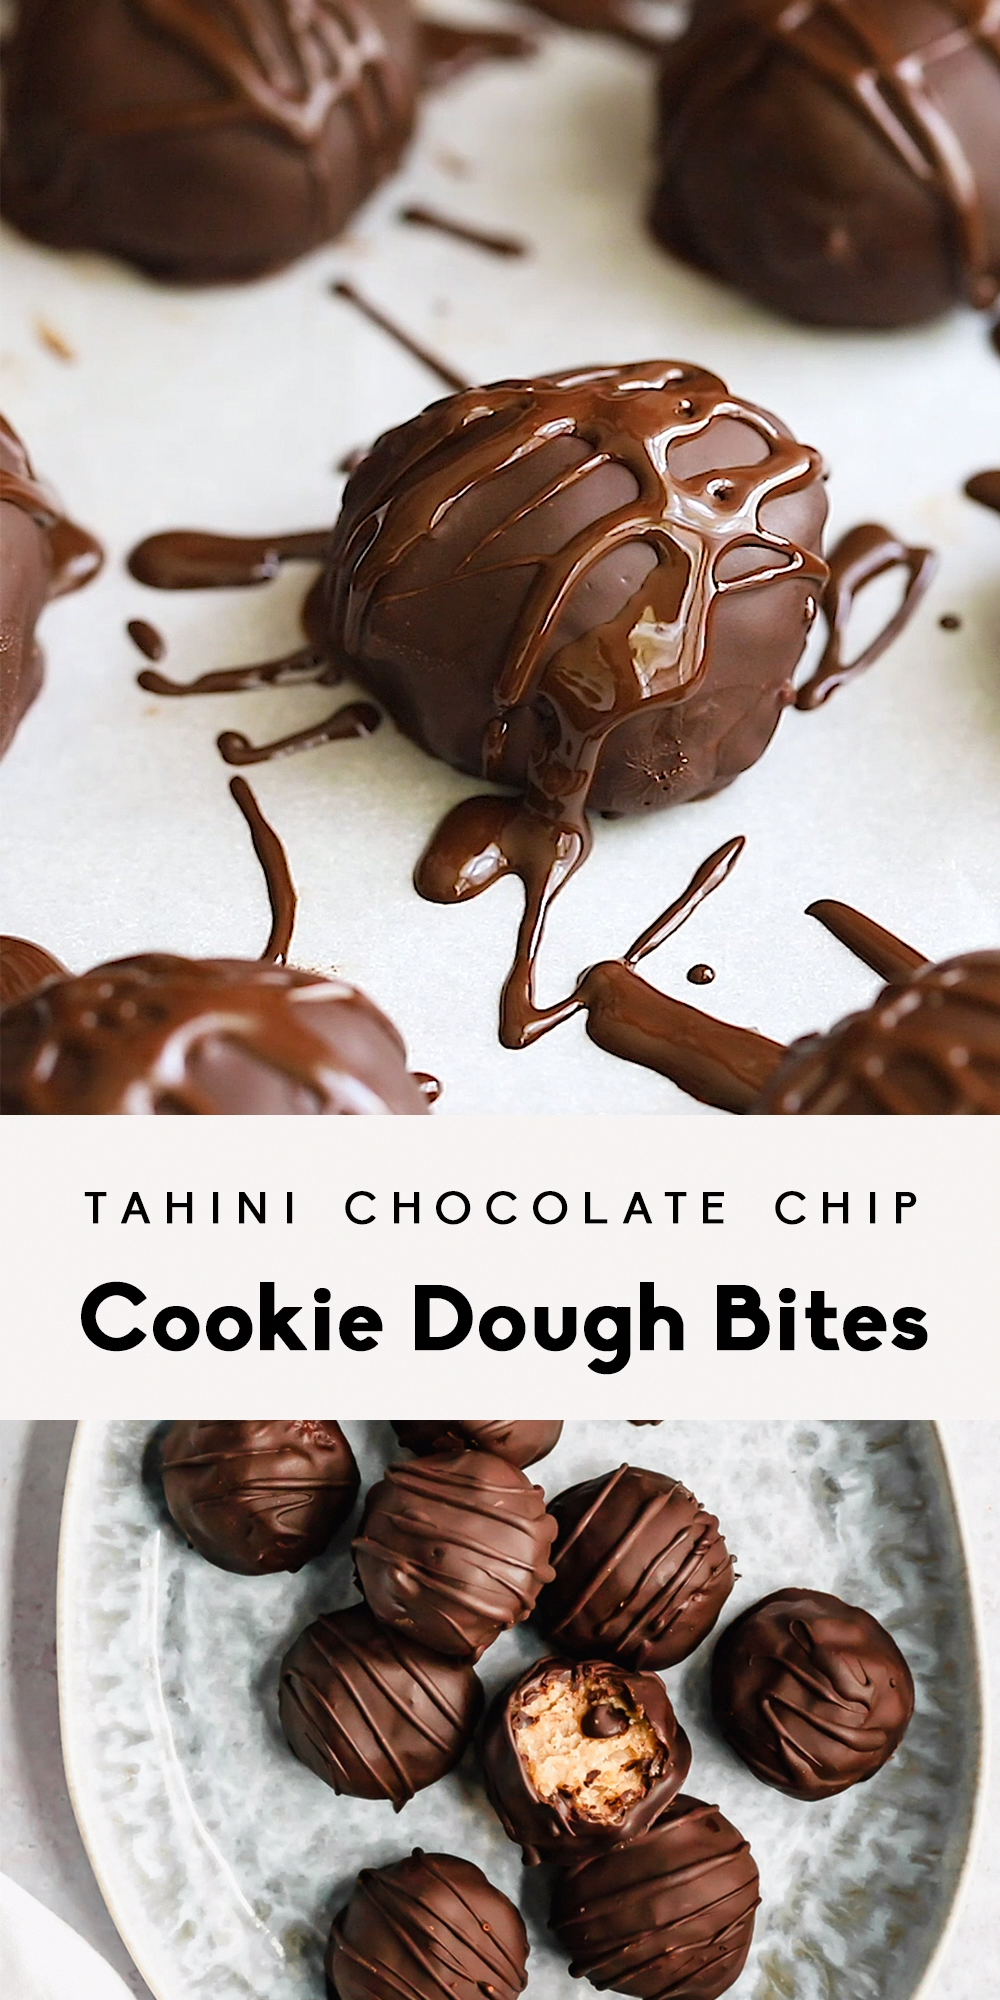 Delicious no bake tahini chocolate chip cookie dough bites! These eggless cookie dough bites are vegan, dairy free, gluten free and naturally sweetened with just pure maple syrup and chocolate chips. Keep them in your freezer for an easy no bake healthy dessert!